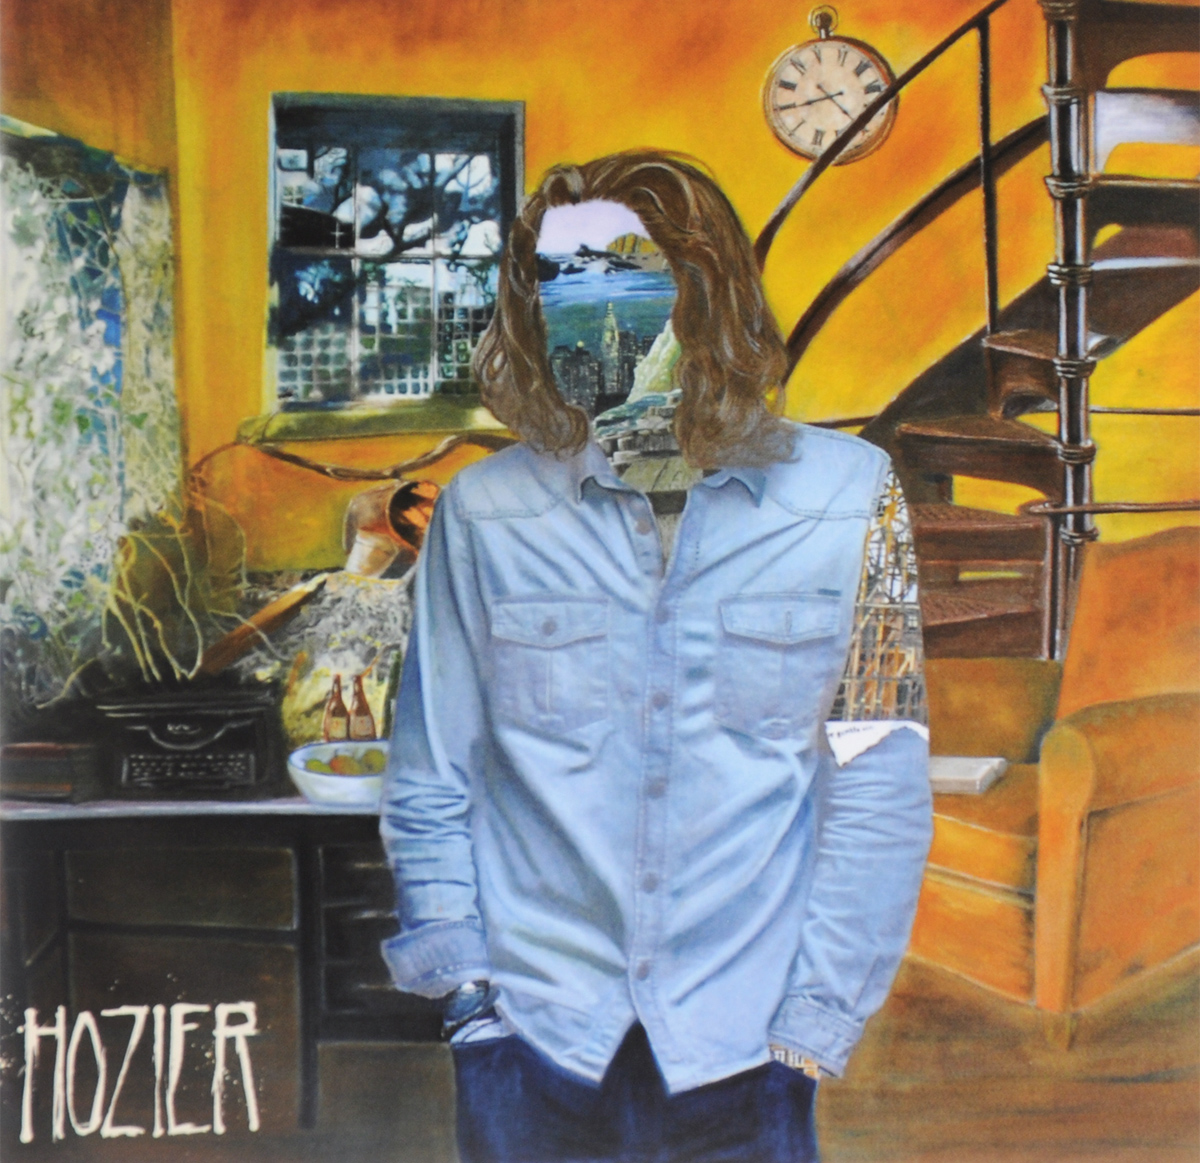 Hozier Hozier. Hozier. Special Edition (2 CD) cd ac dc highway to hell special edition digipack